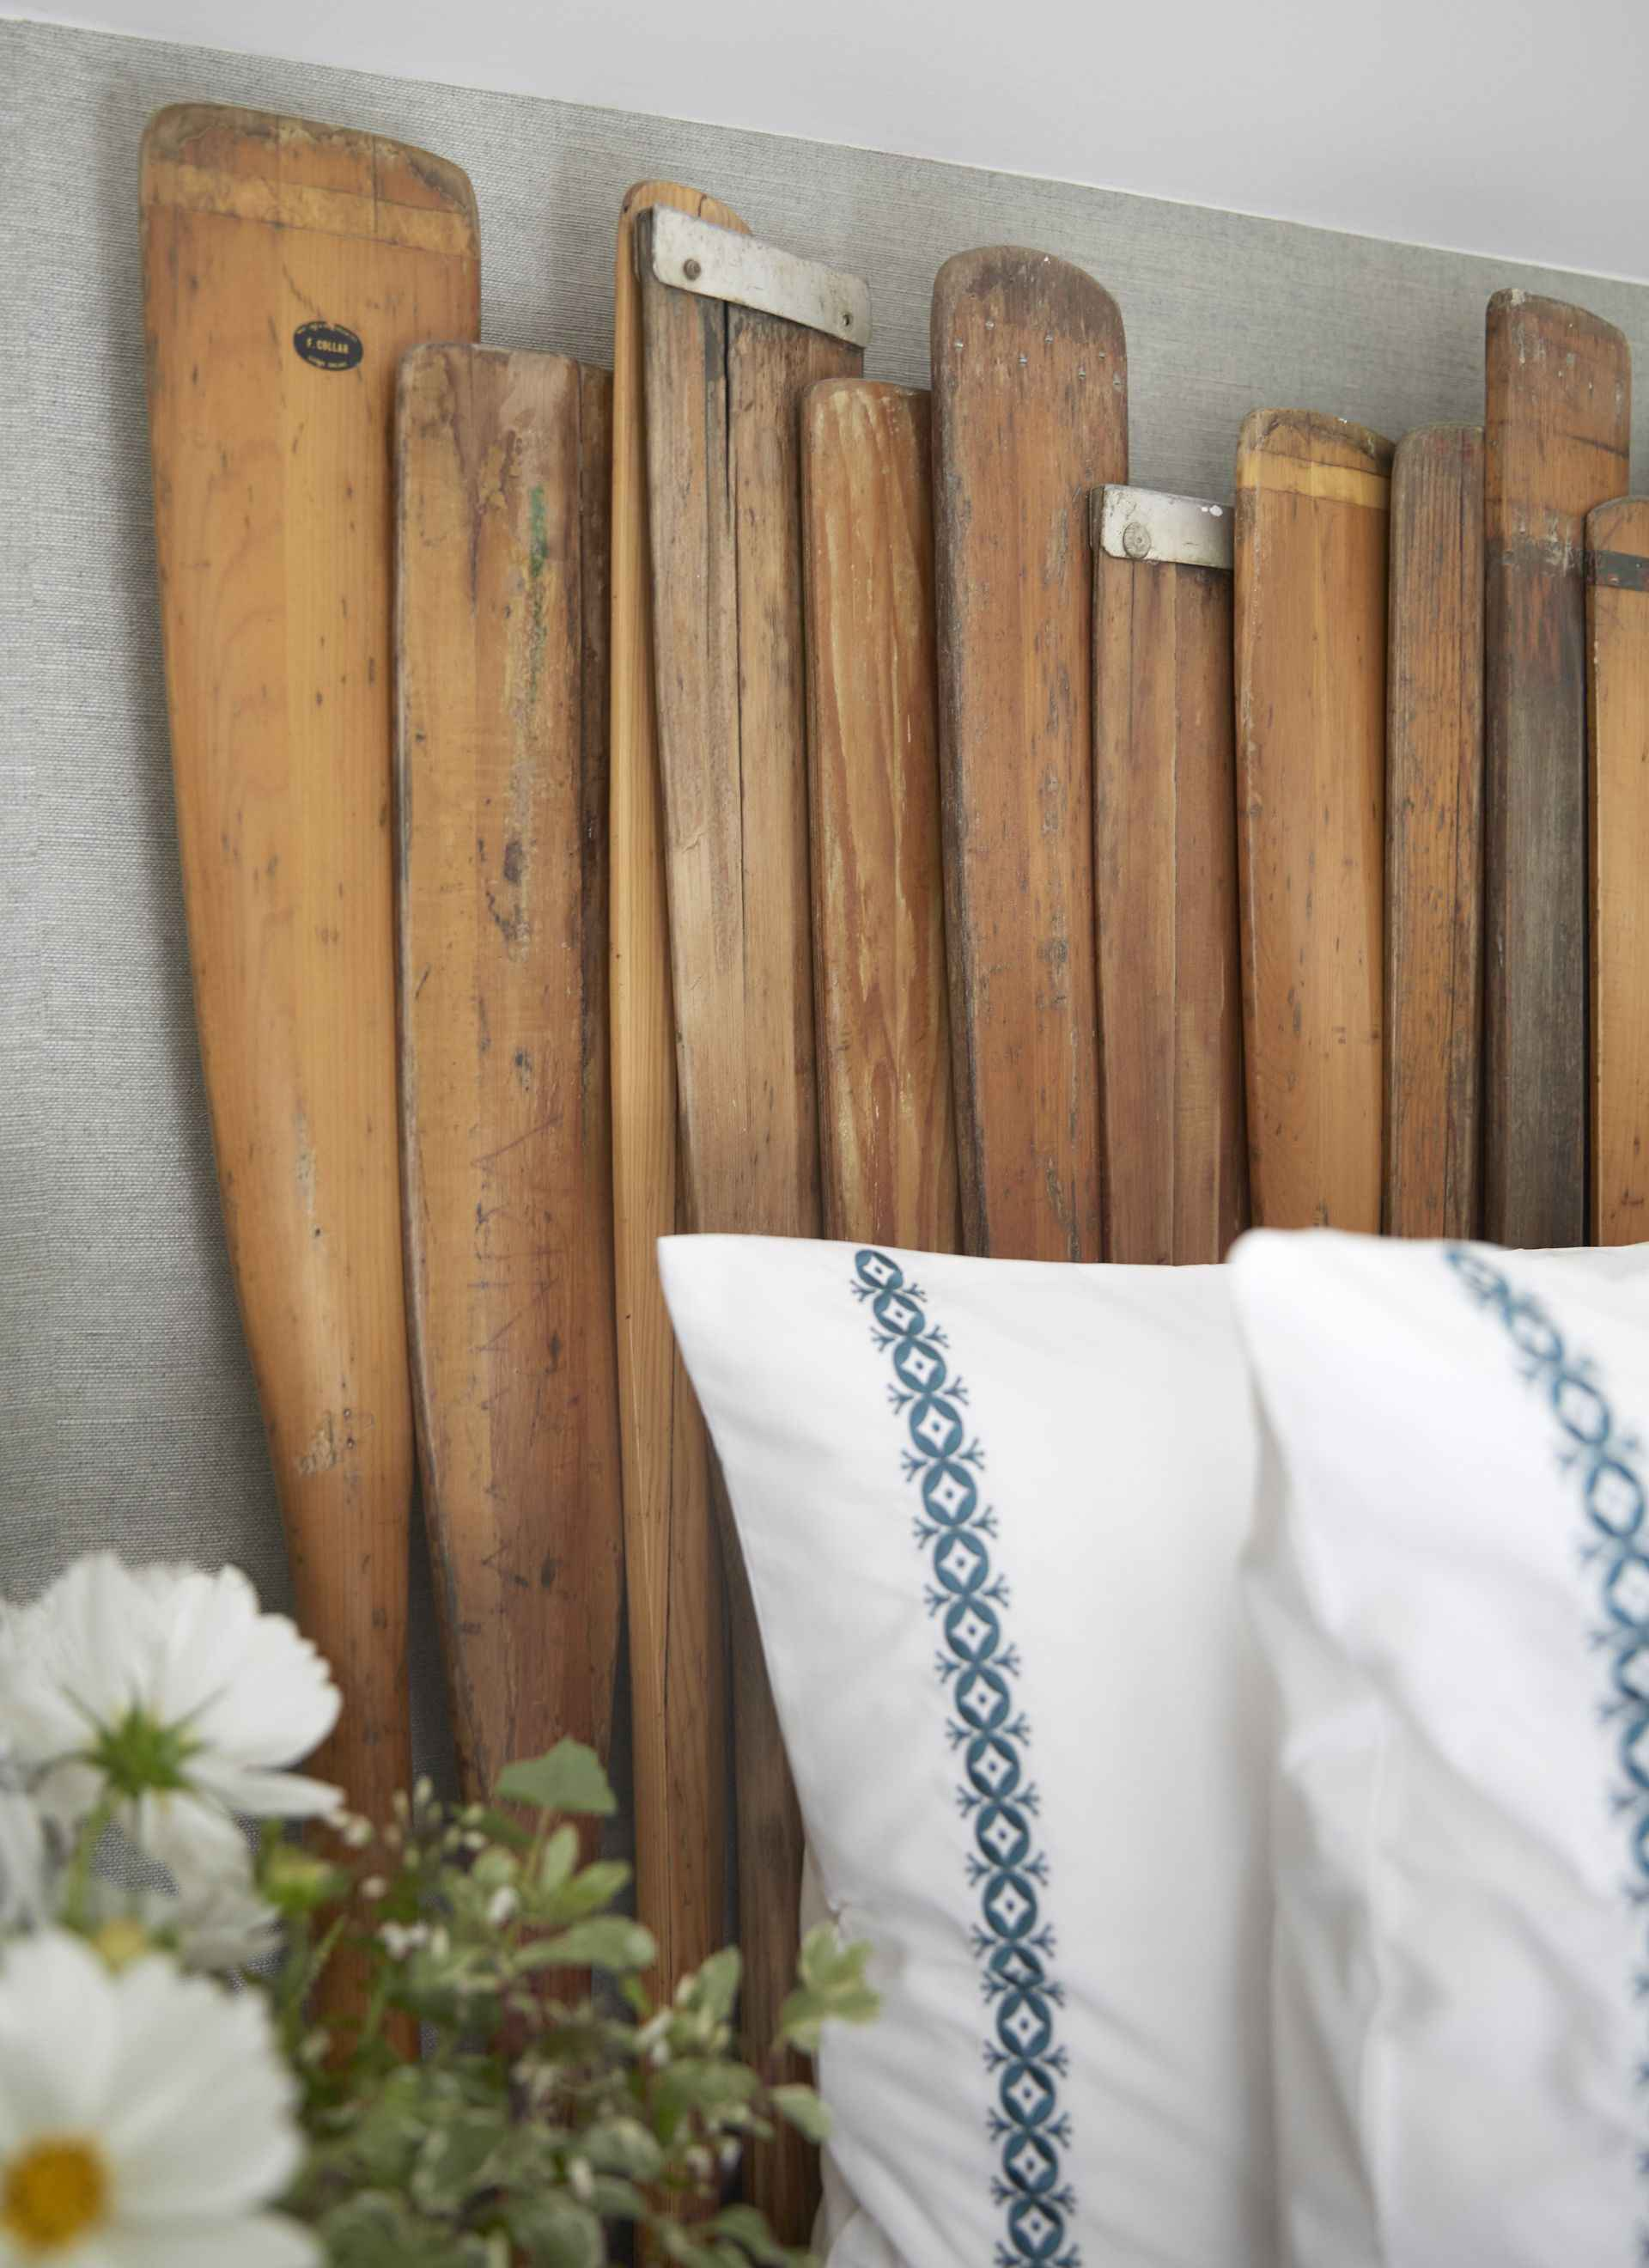 Headboard made from oars at the oar room at Mountain Ash House